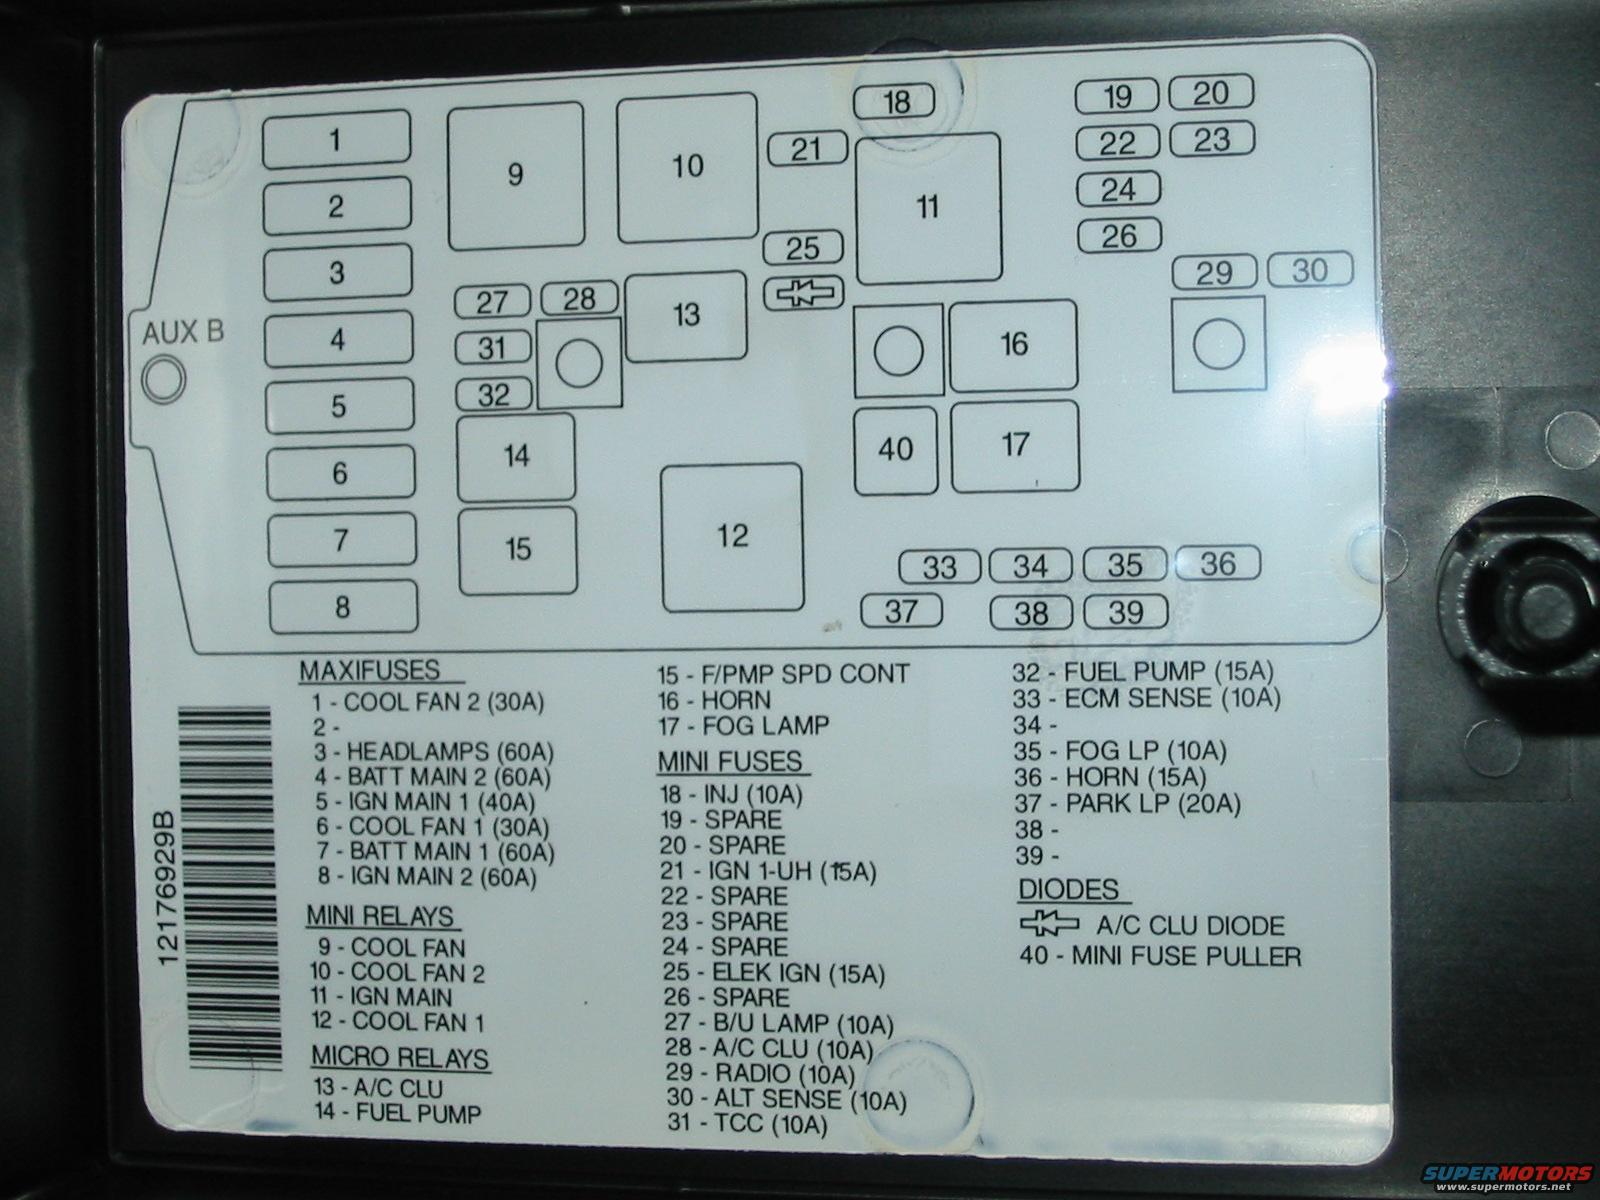 98 Pontiac Grand Prix Fuse Box Diagram Wiring Diagrams 04 Blower Motor Resistorblower 1998 Gt Panel